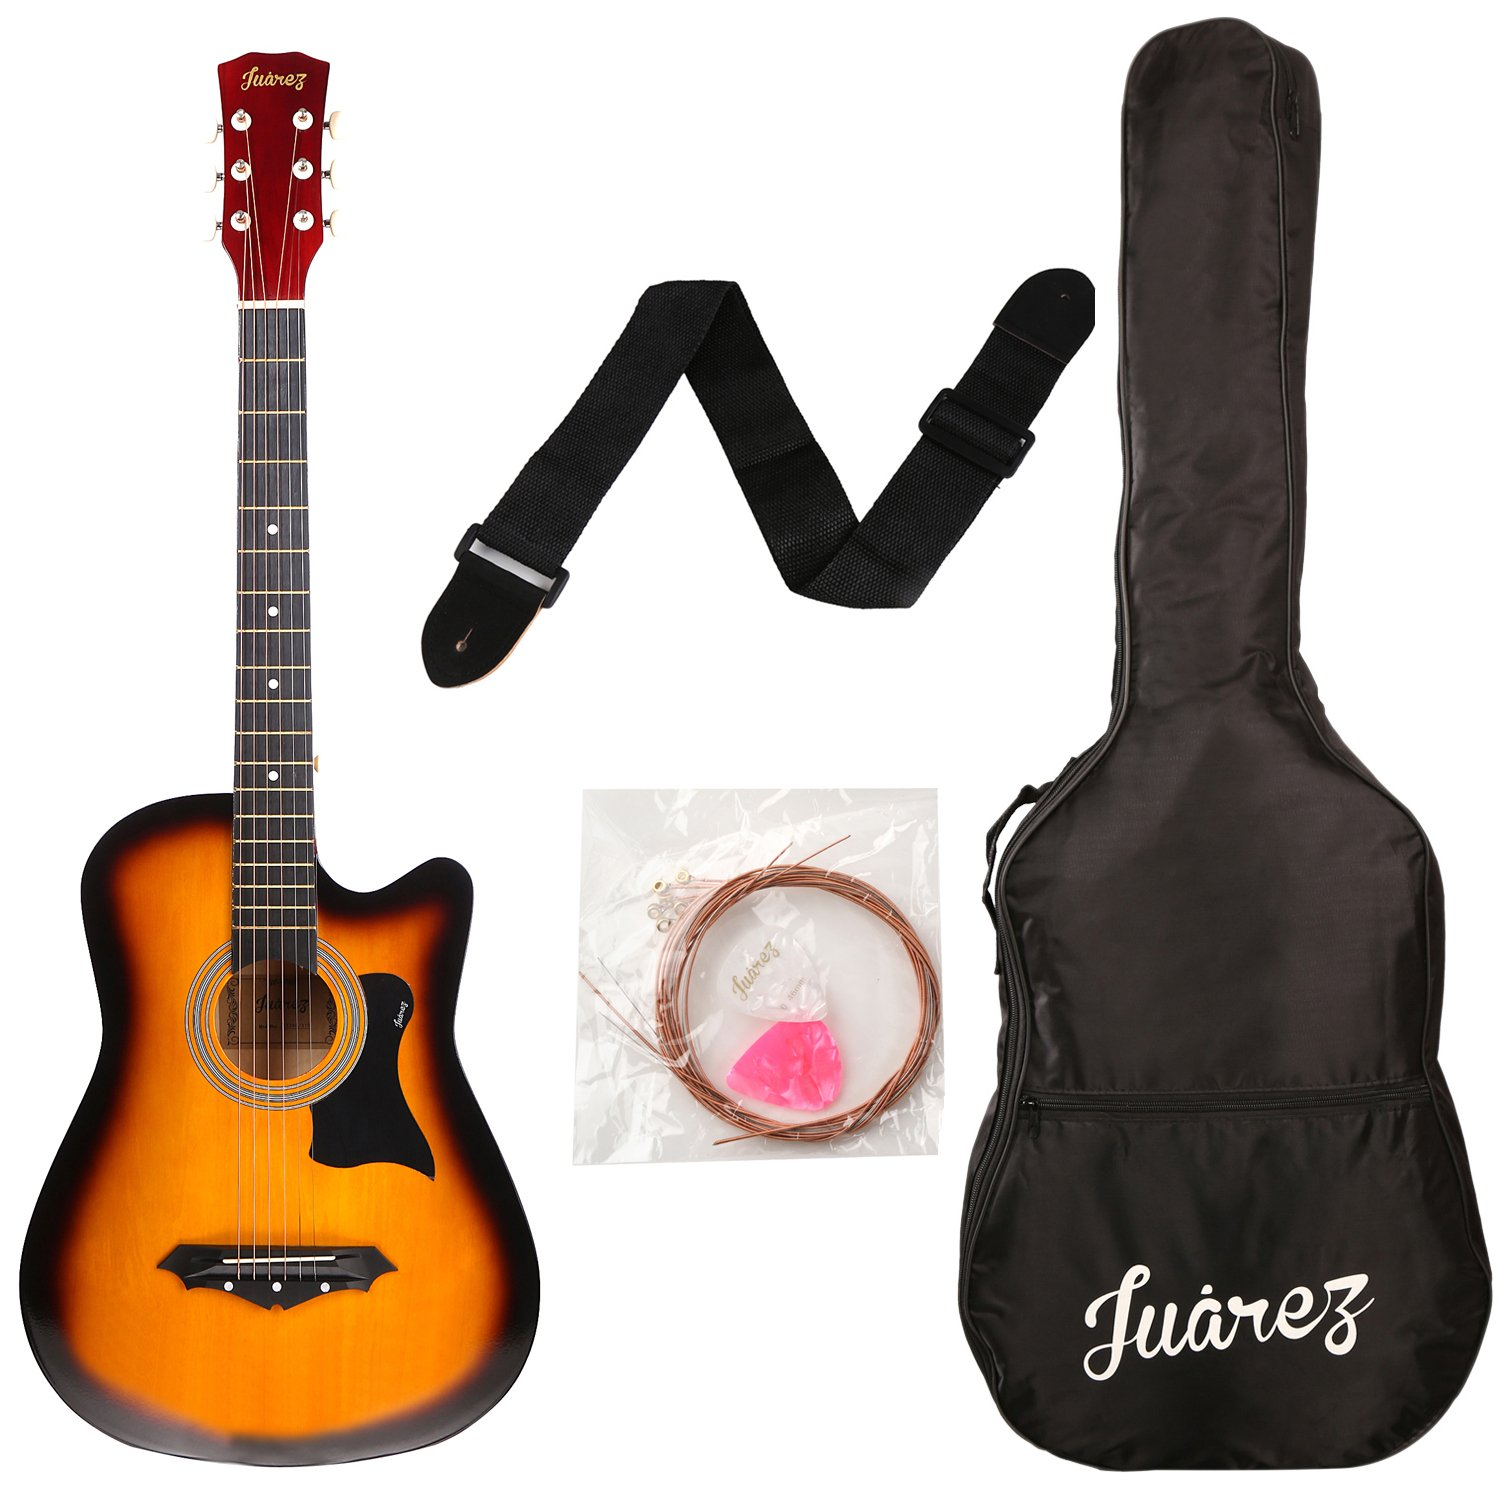 Juarez JRZ38C/3TS Acoustic Guitar, 38 Inch Cutaway with Bag (3TS Sunburst) product image